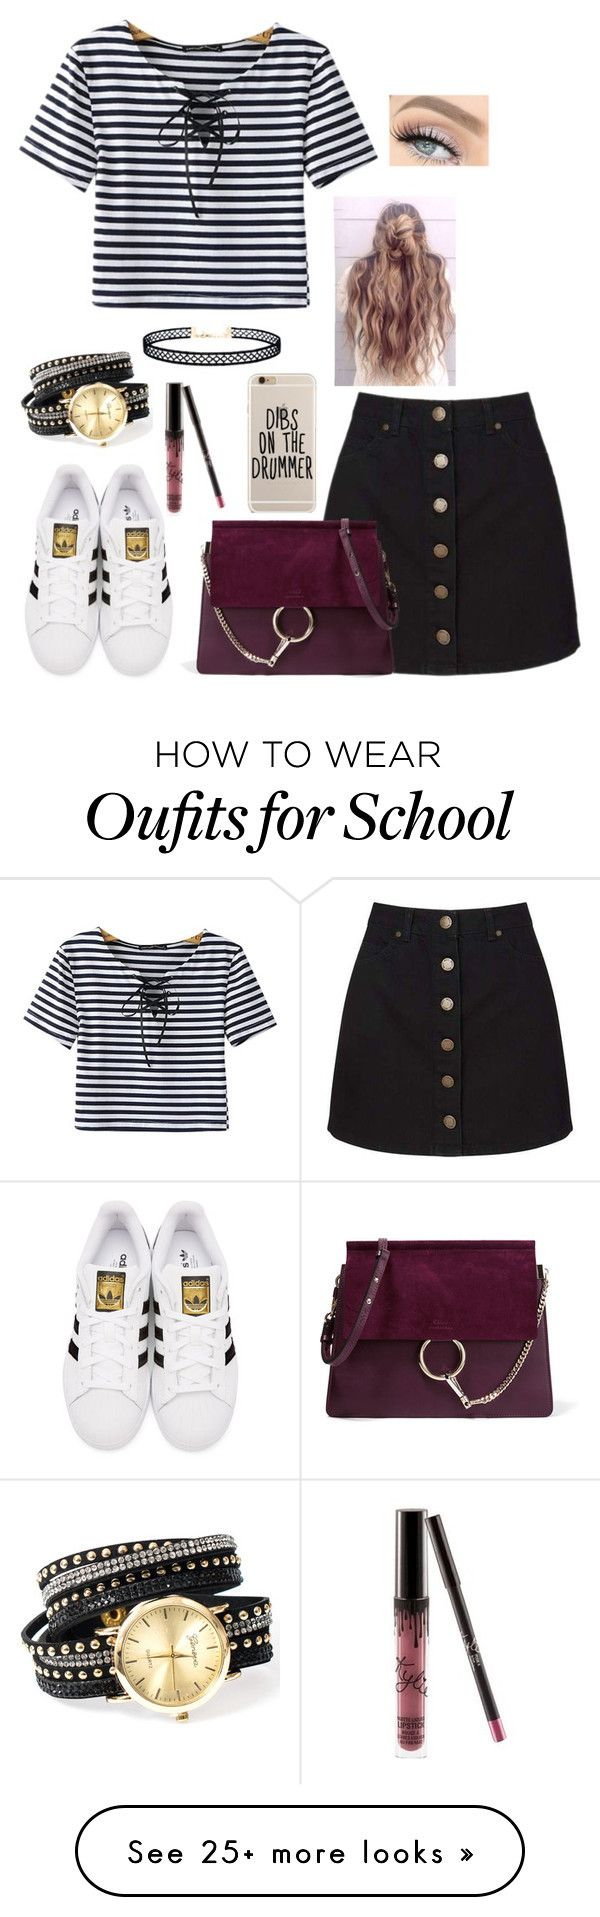 fashion essay topics best ideas about high school fashion casual  best ideas about high school fashion casual high school by on polyvore featuring miss selfridge adidas